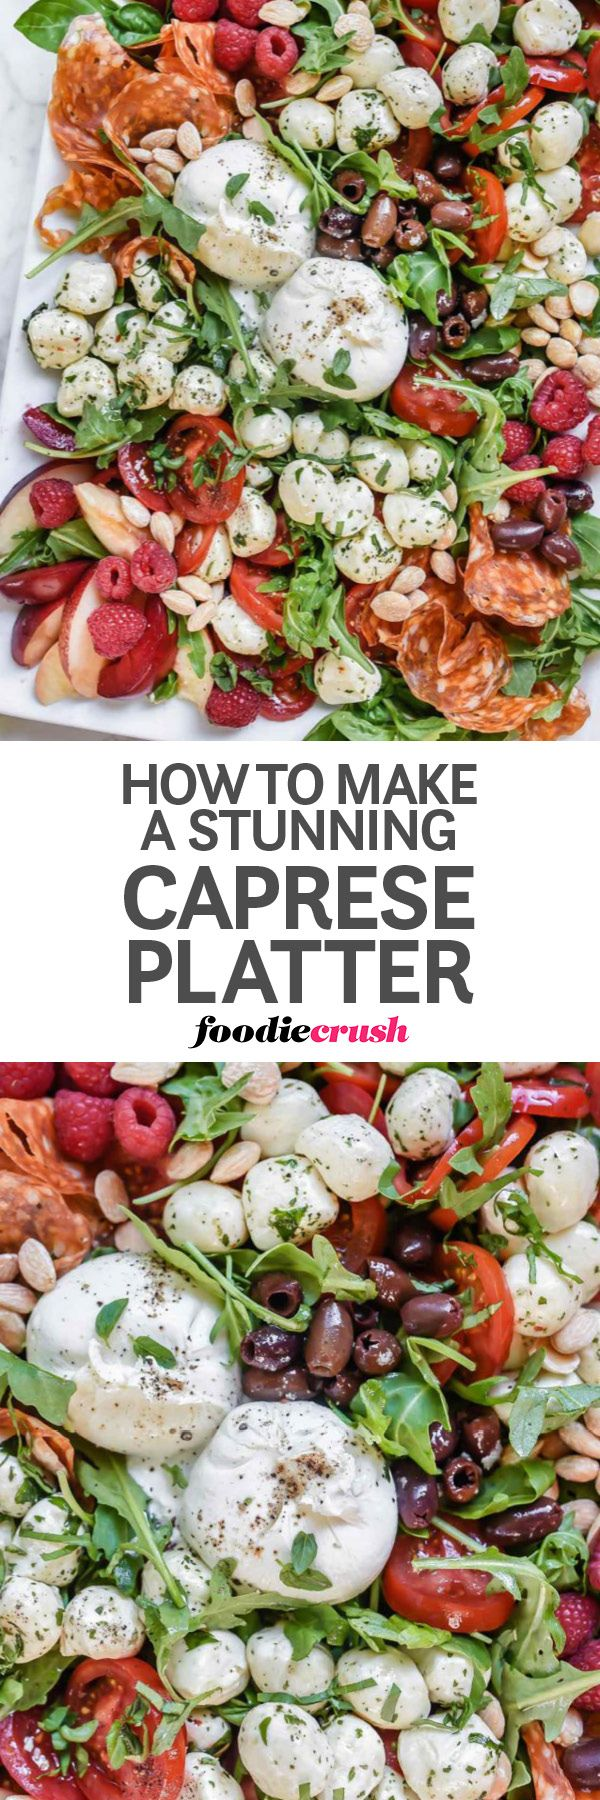 Laying all your favorite caprese salad ingredients—like burrata cheese, marinated mozzarella balls, tomatoes and fresh stone fruit—out on a platter instead of layered in a bowl makes this self-serve salad or appetizer the easiest way to choose all your favorite bites. | caprese salad | burrata caprese salad | potluck caprese salad | salad for a crowd | foodiecrush.com